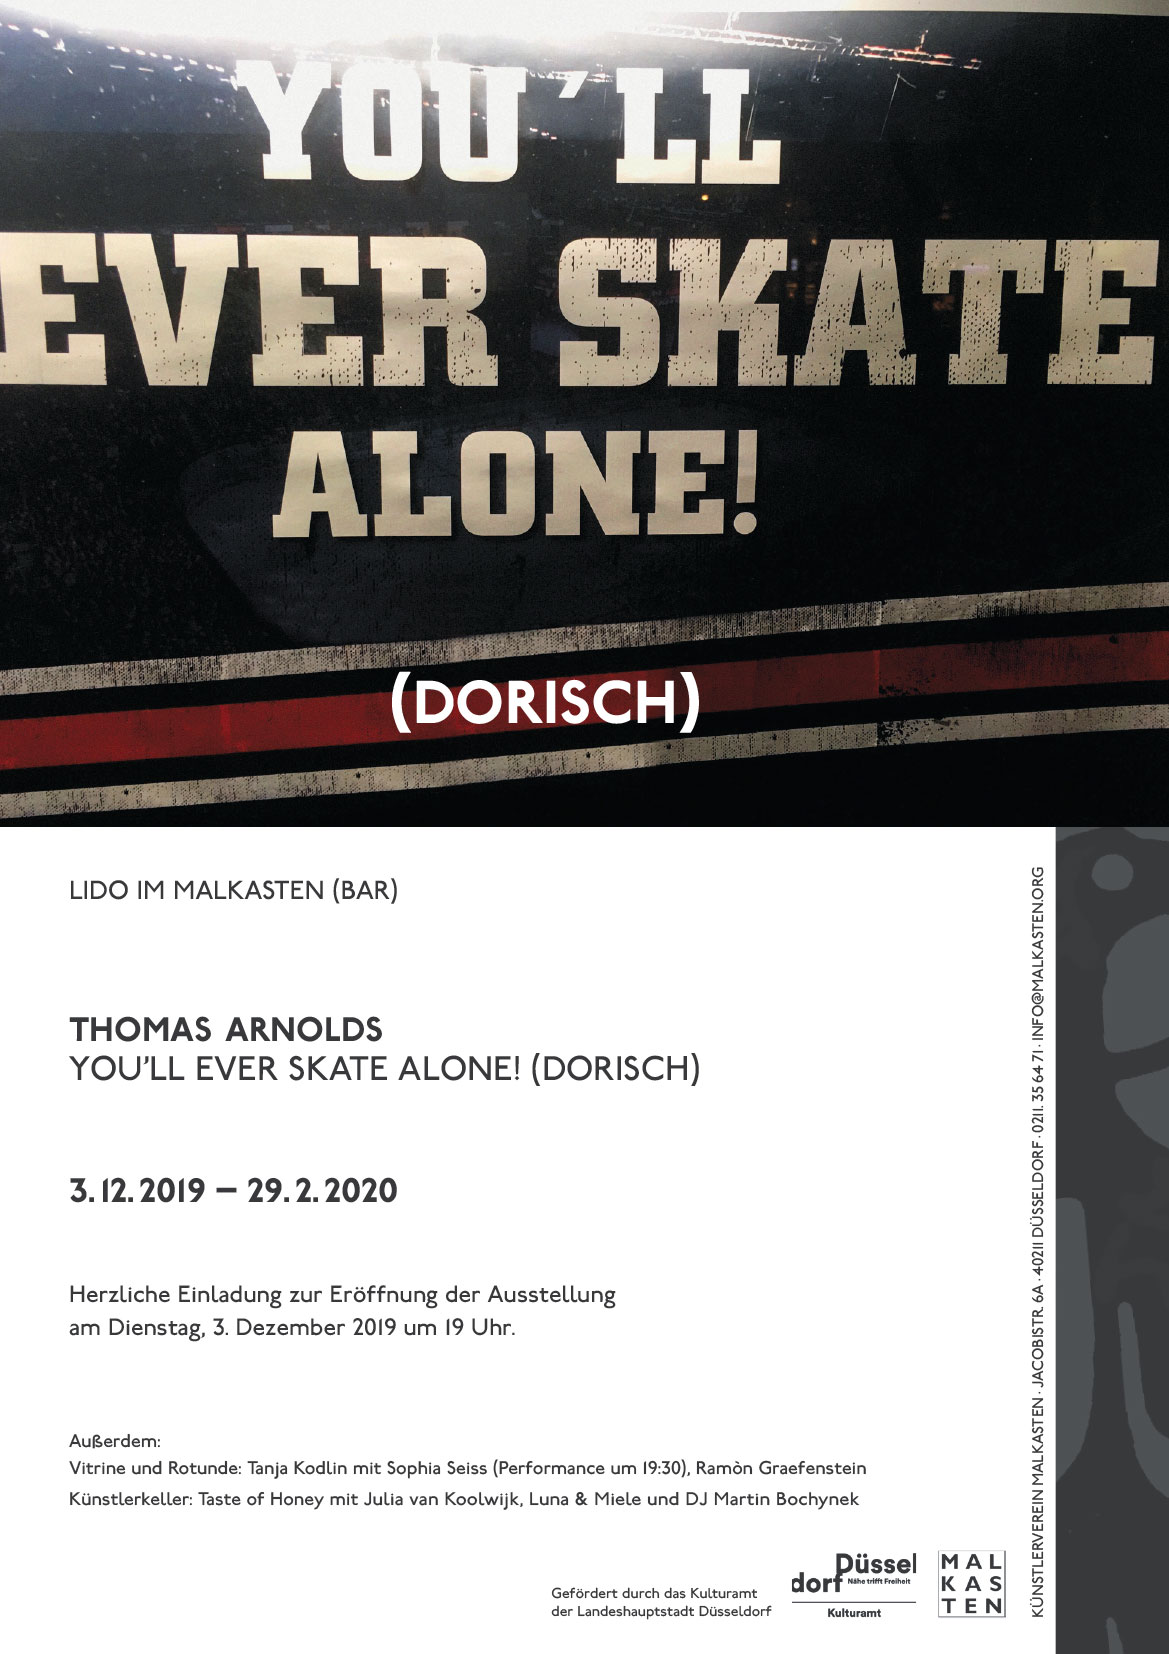 Thomas Arnolds: You'll ever skate alone! (dorisch) at Künstlerverein Malkasten in Düsseldorf